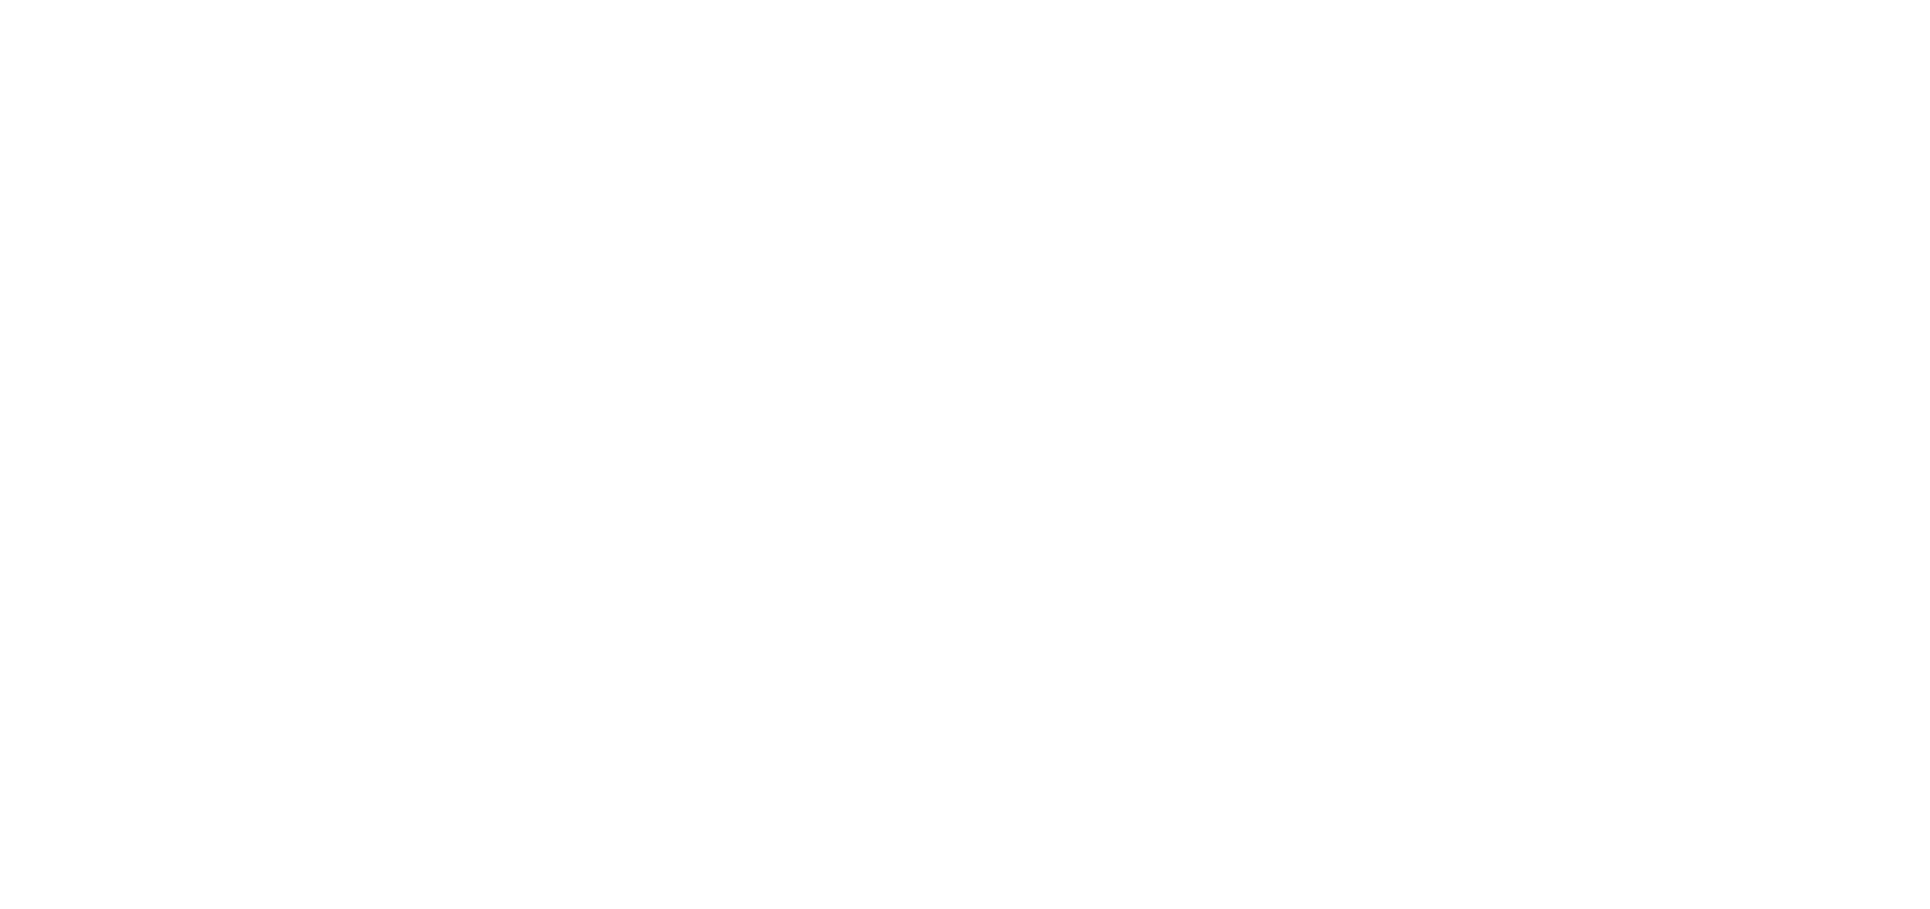 Tees Valley Youth for Christ